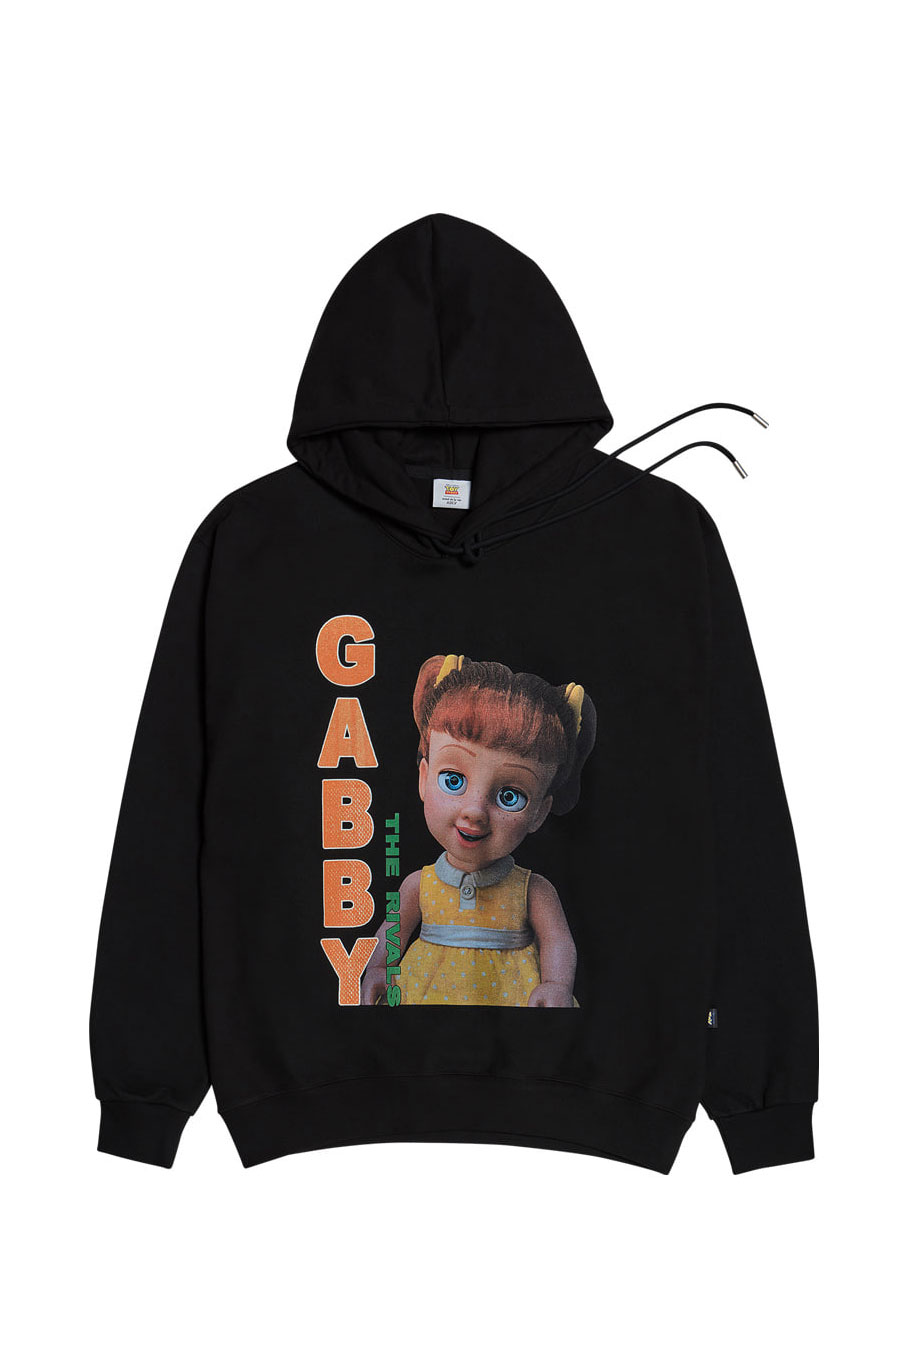 [TOY STORY X ADLV] THE RIVALS HOODIE (GABBY)